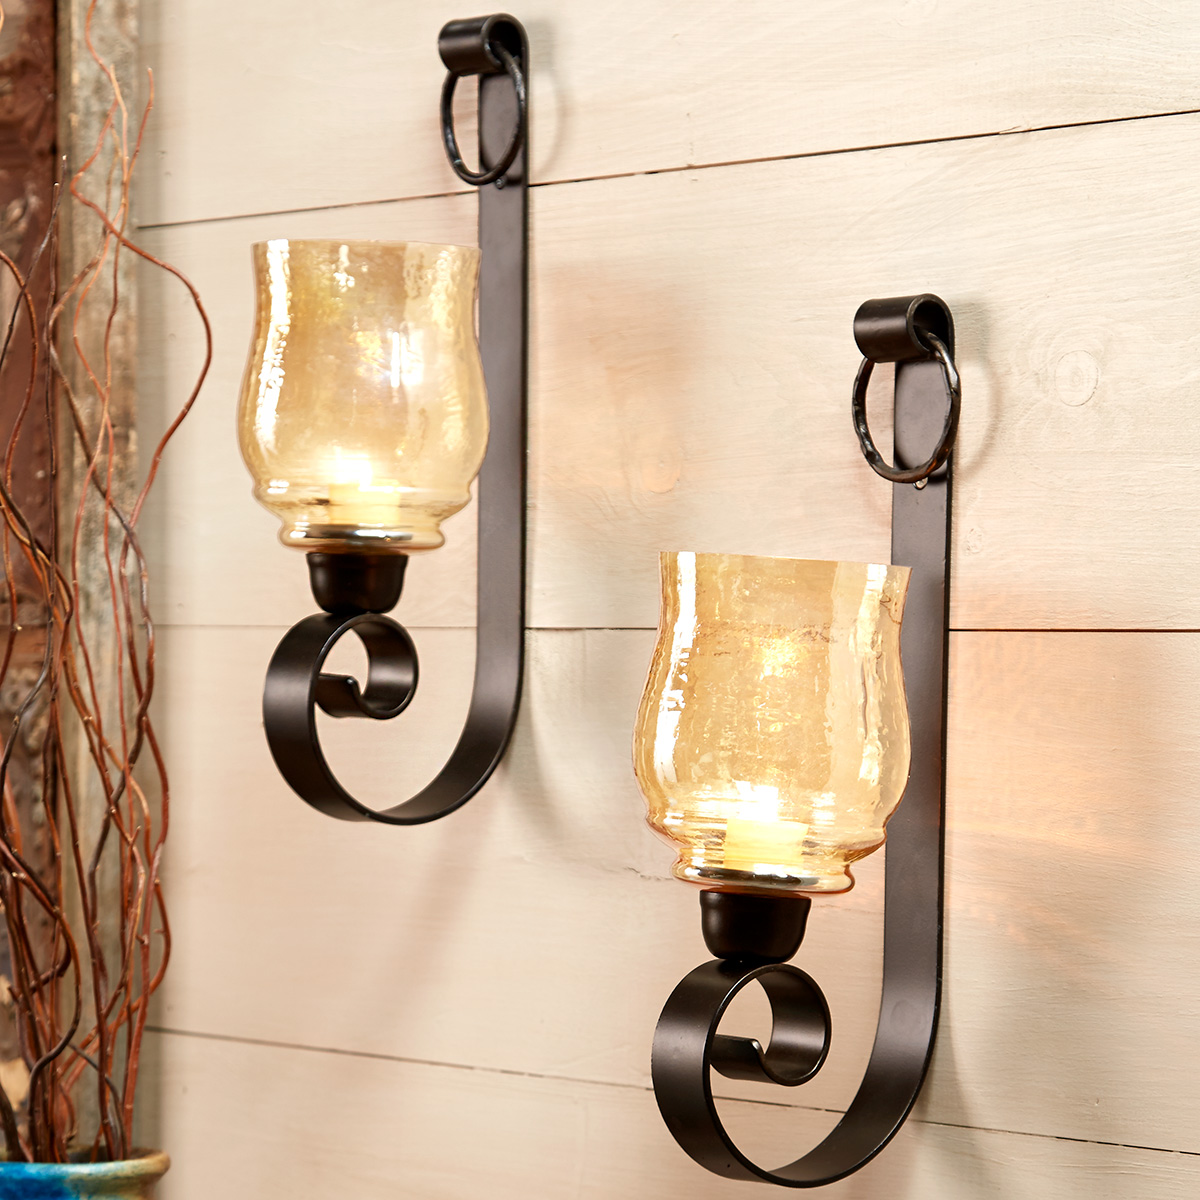 Western Scroll Wall Sconces - Set of 2